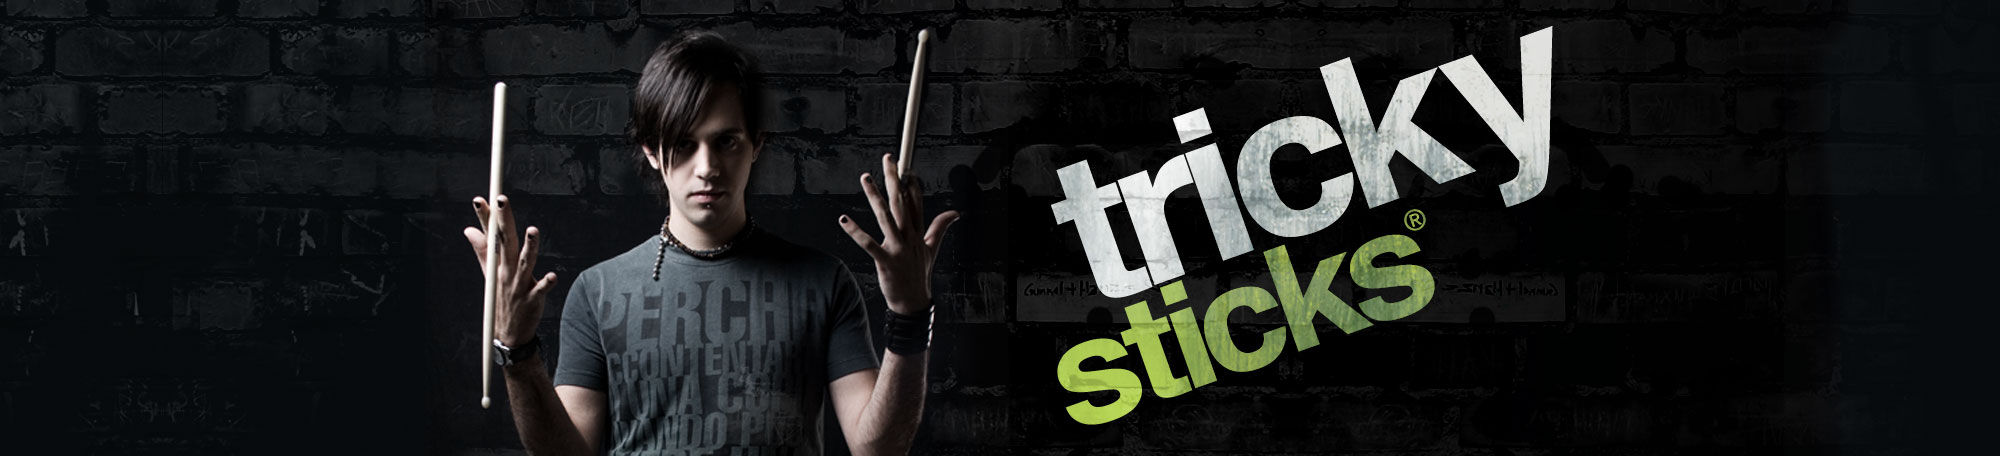 trickysticks_poster_north_shore